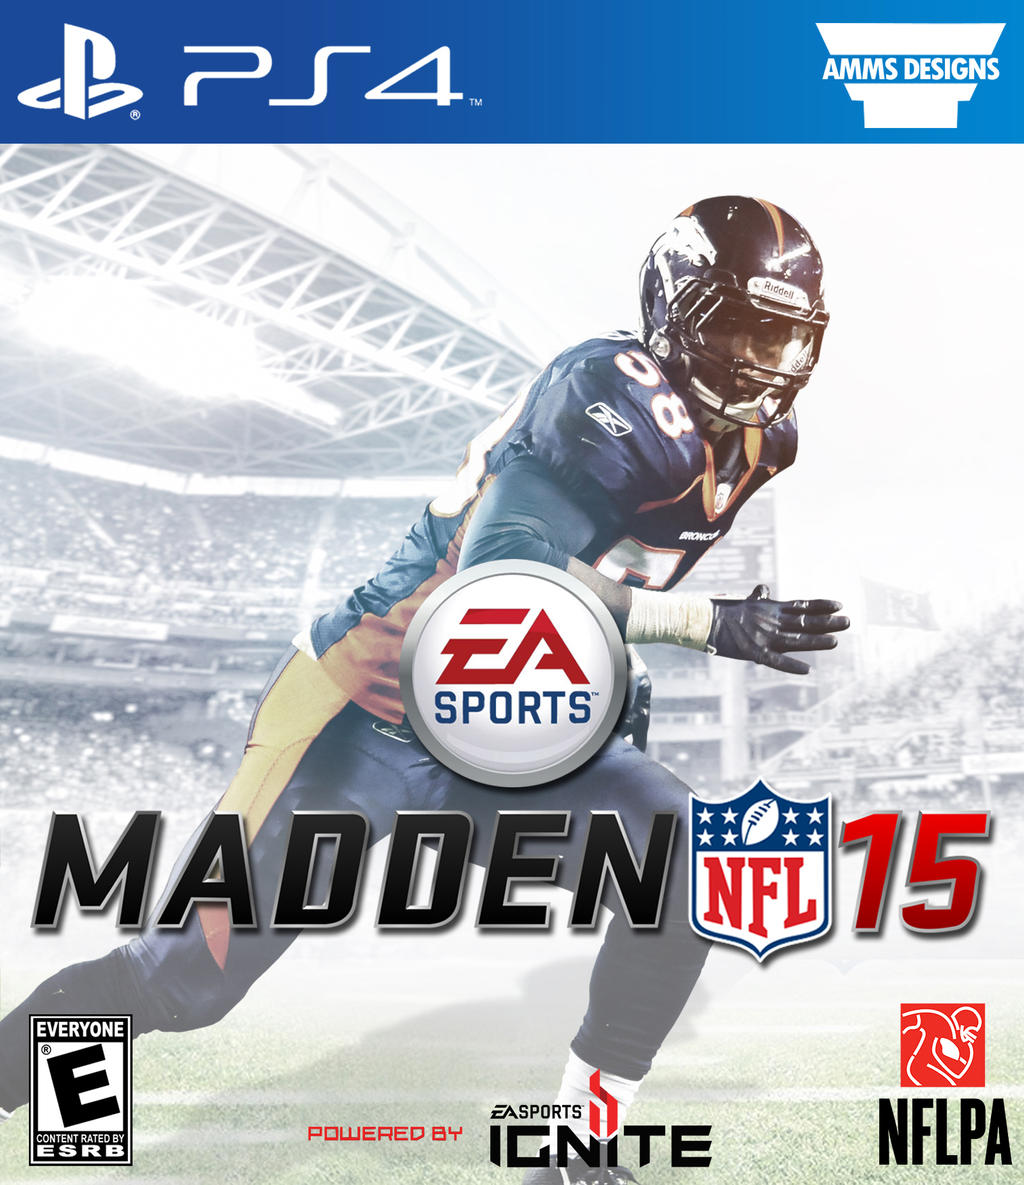 Von Miller Custom Madden 15 Cover PS4 Version By AMMSDesings